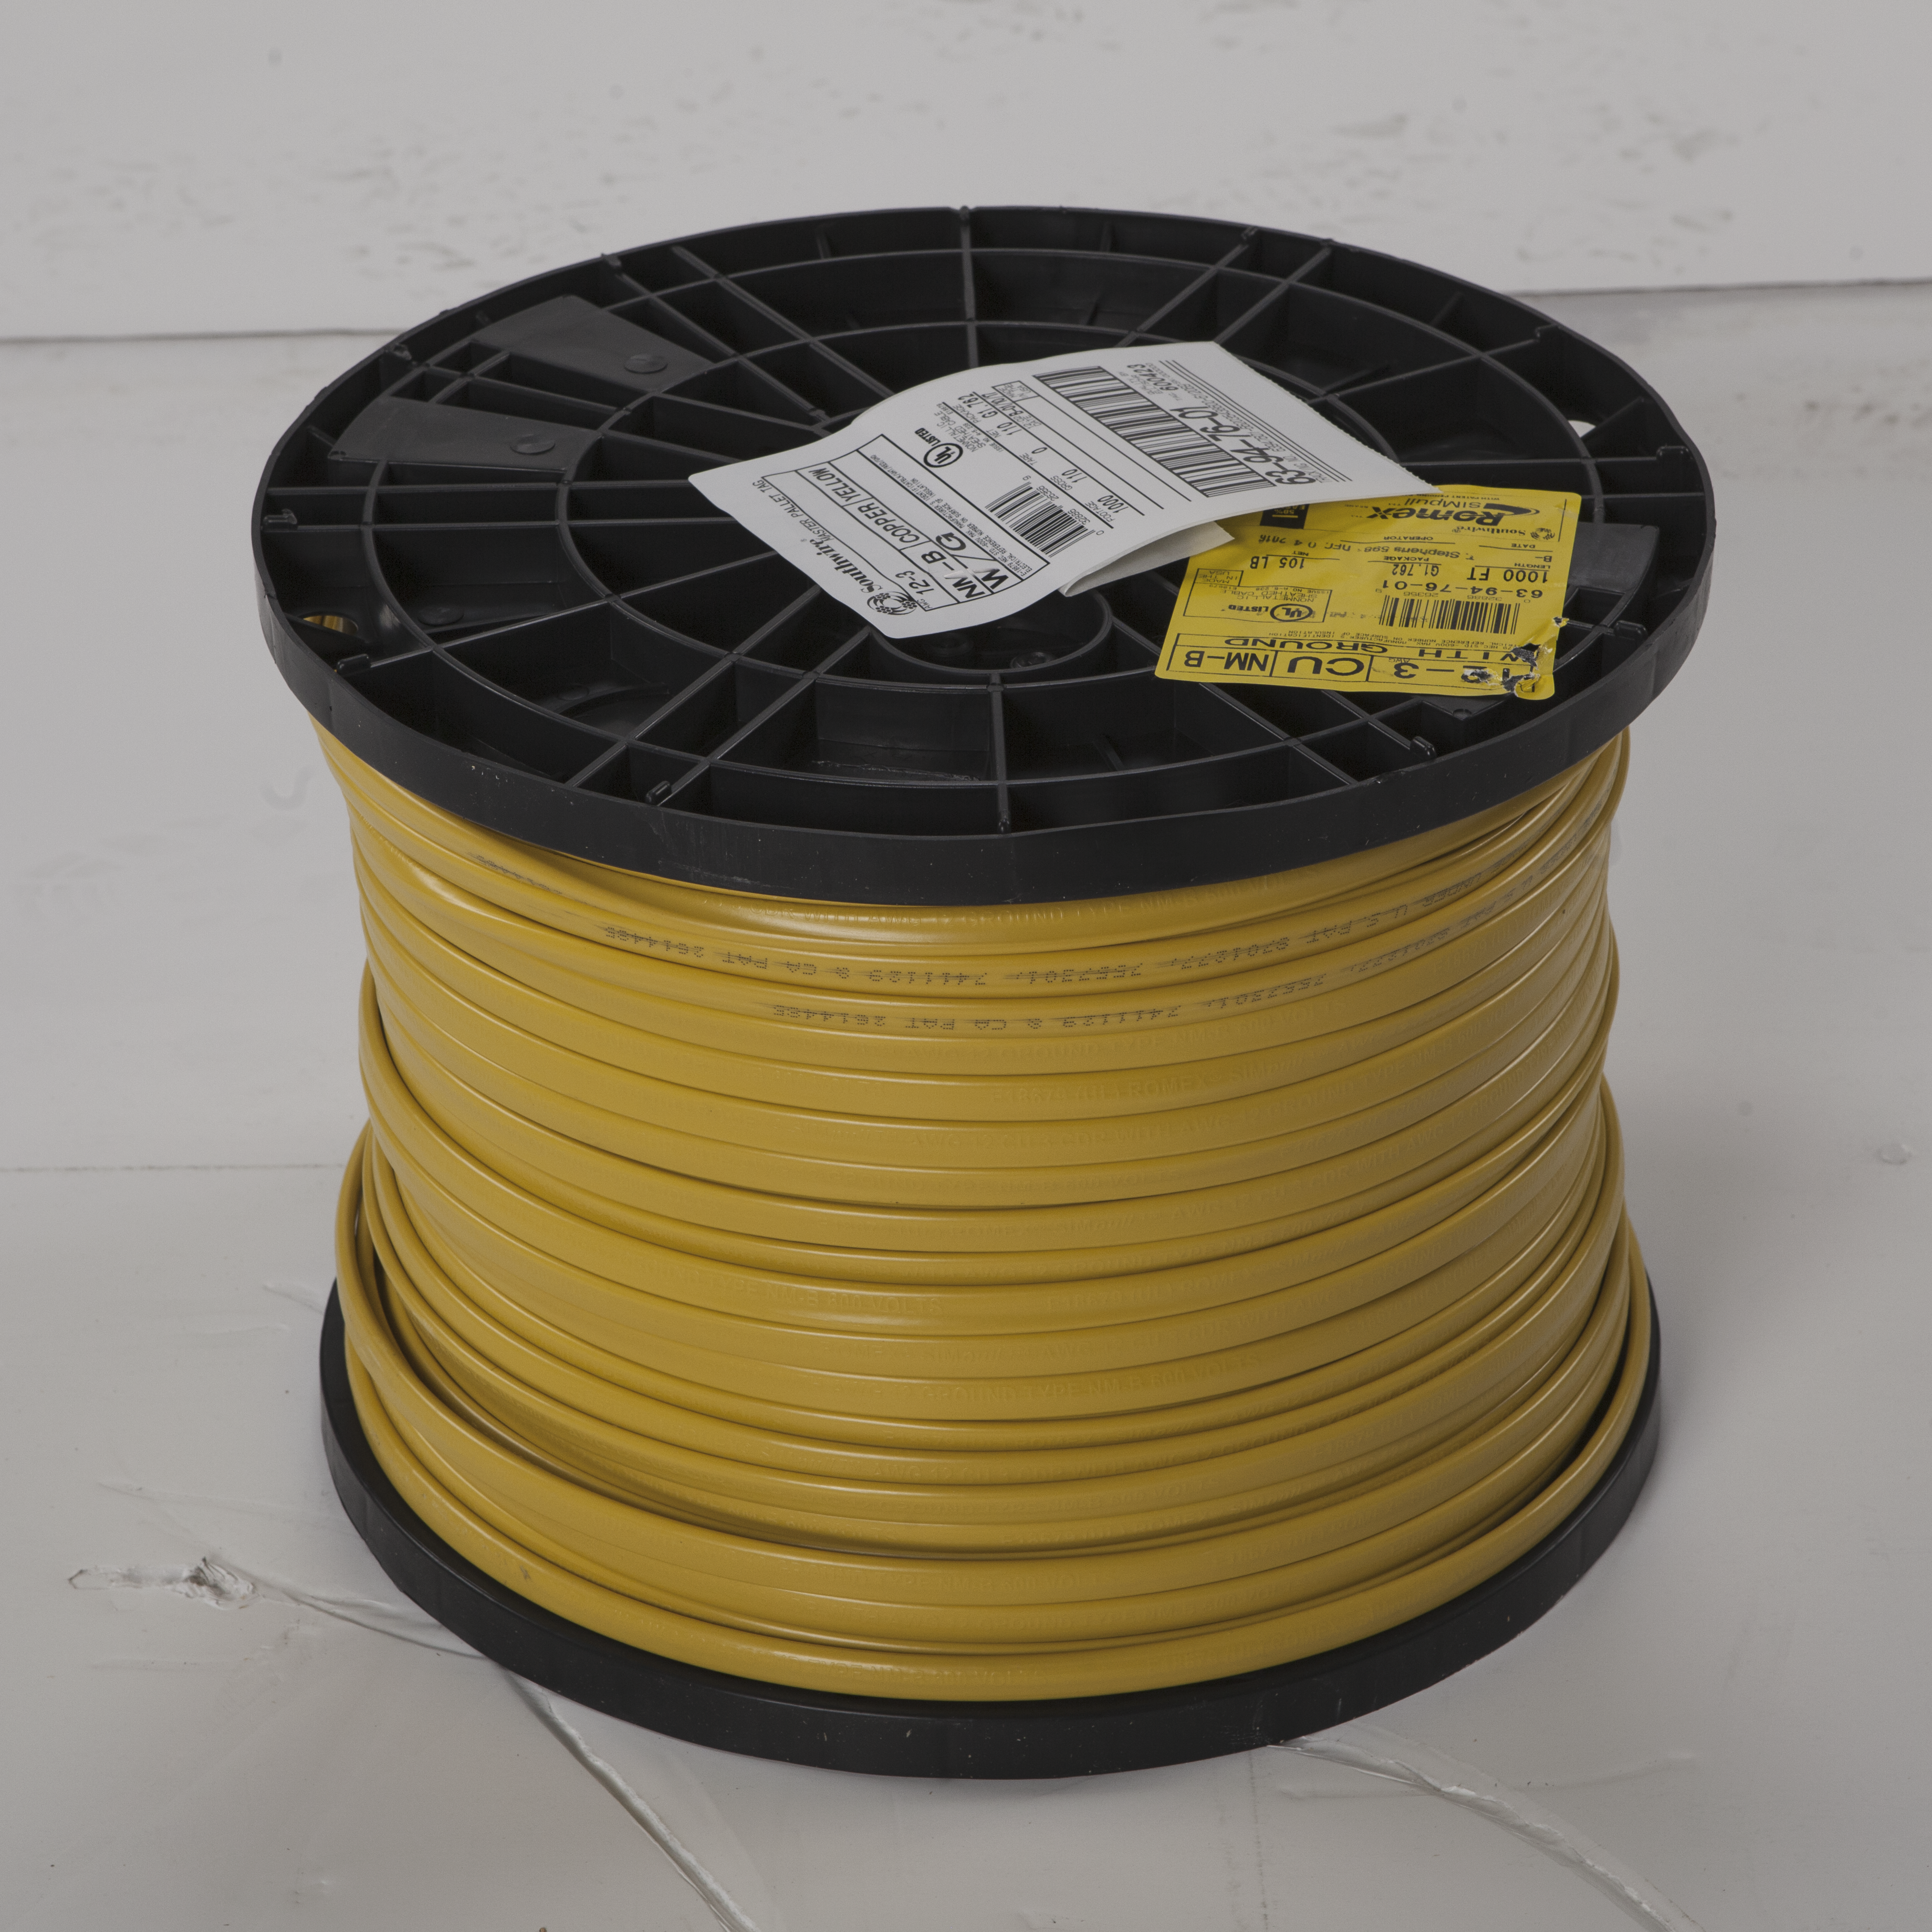 Wire & Cable CUNMB 12/3 W/GRD 1000' REEL